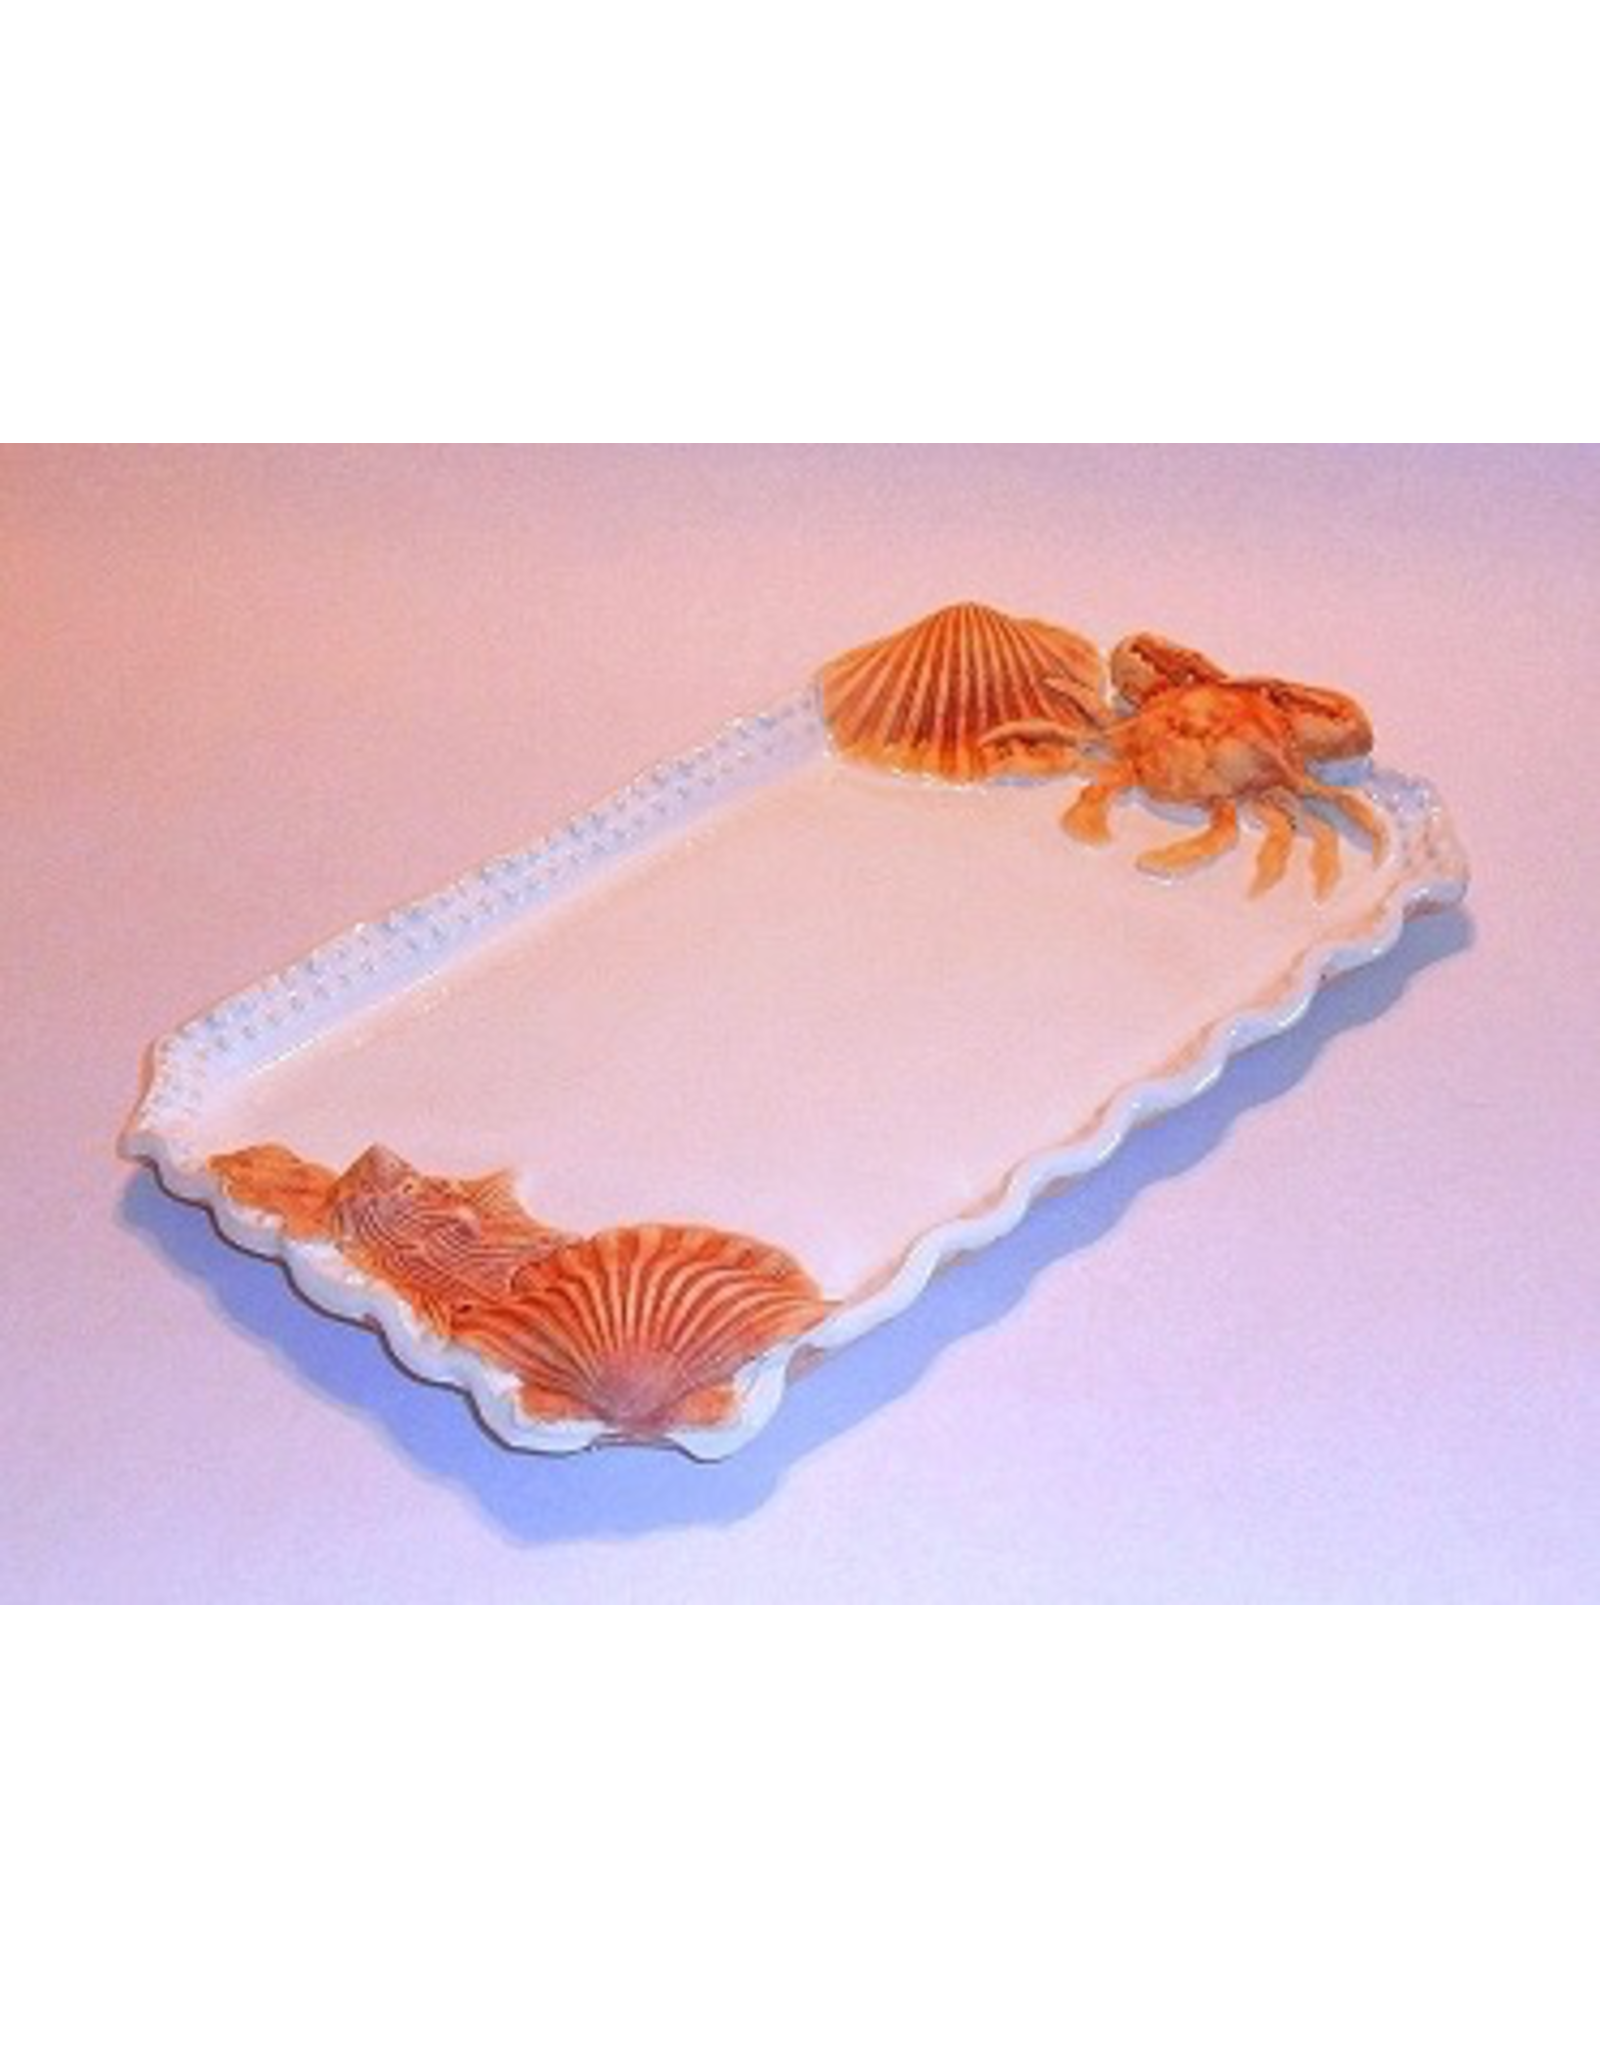 TRAY (Beaded, RECT, Md, #3, CHAP)